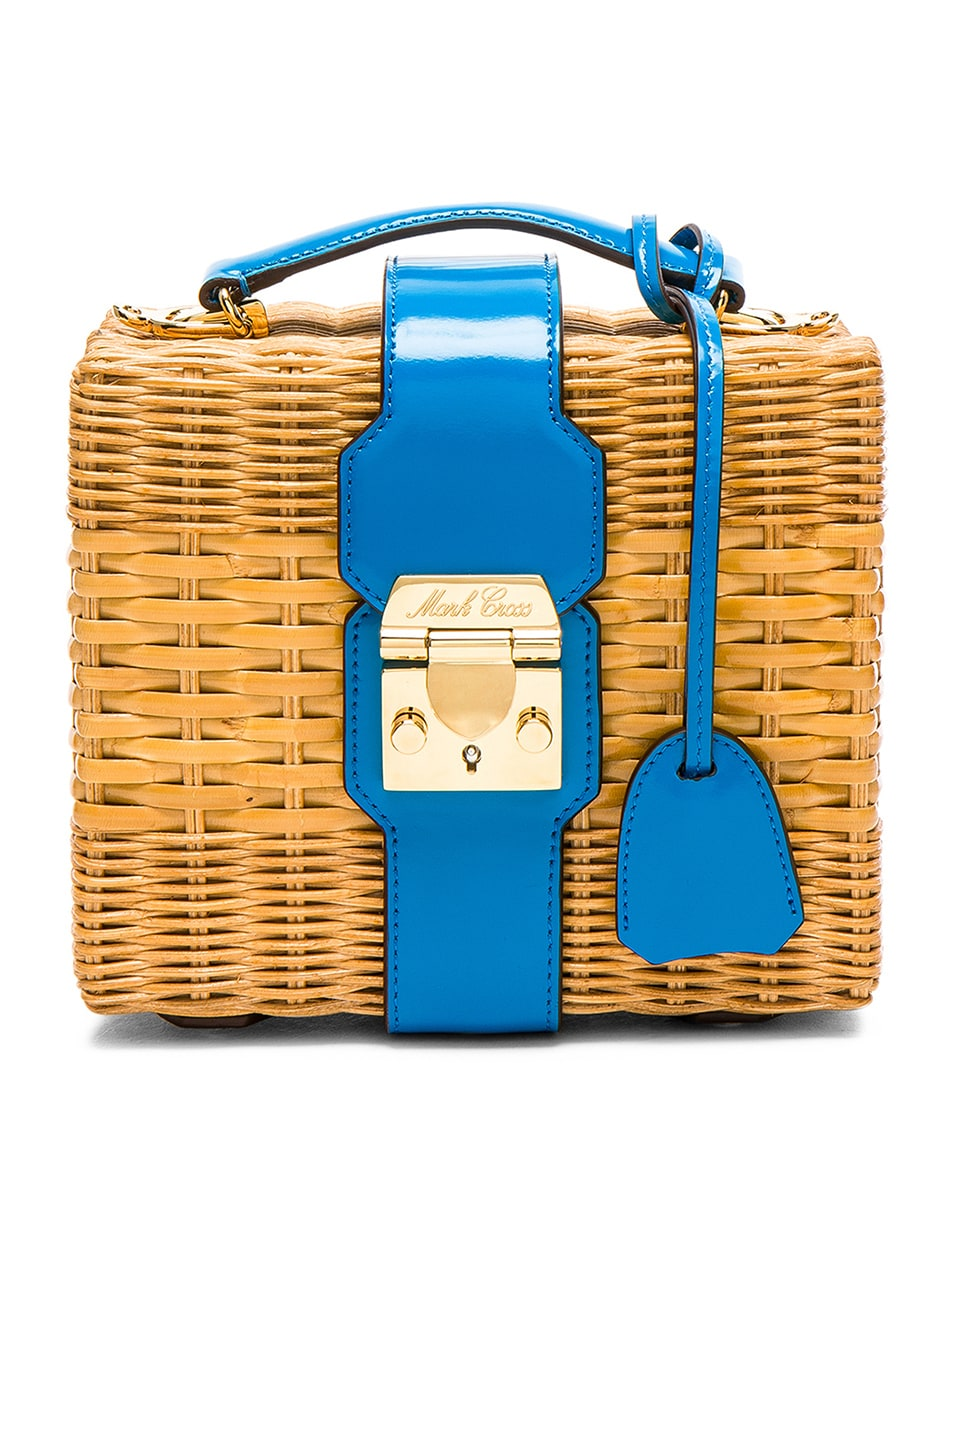 Image 1 of Mark Cross for FWRD Harley Rattan Bag in Turquoise Brushoff